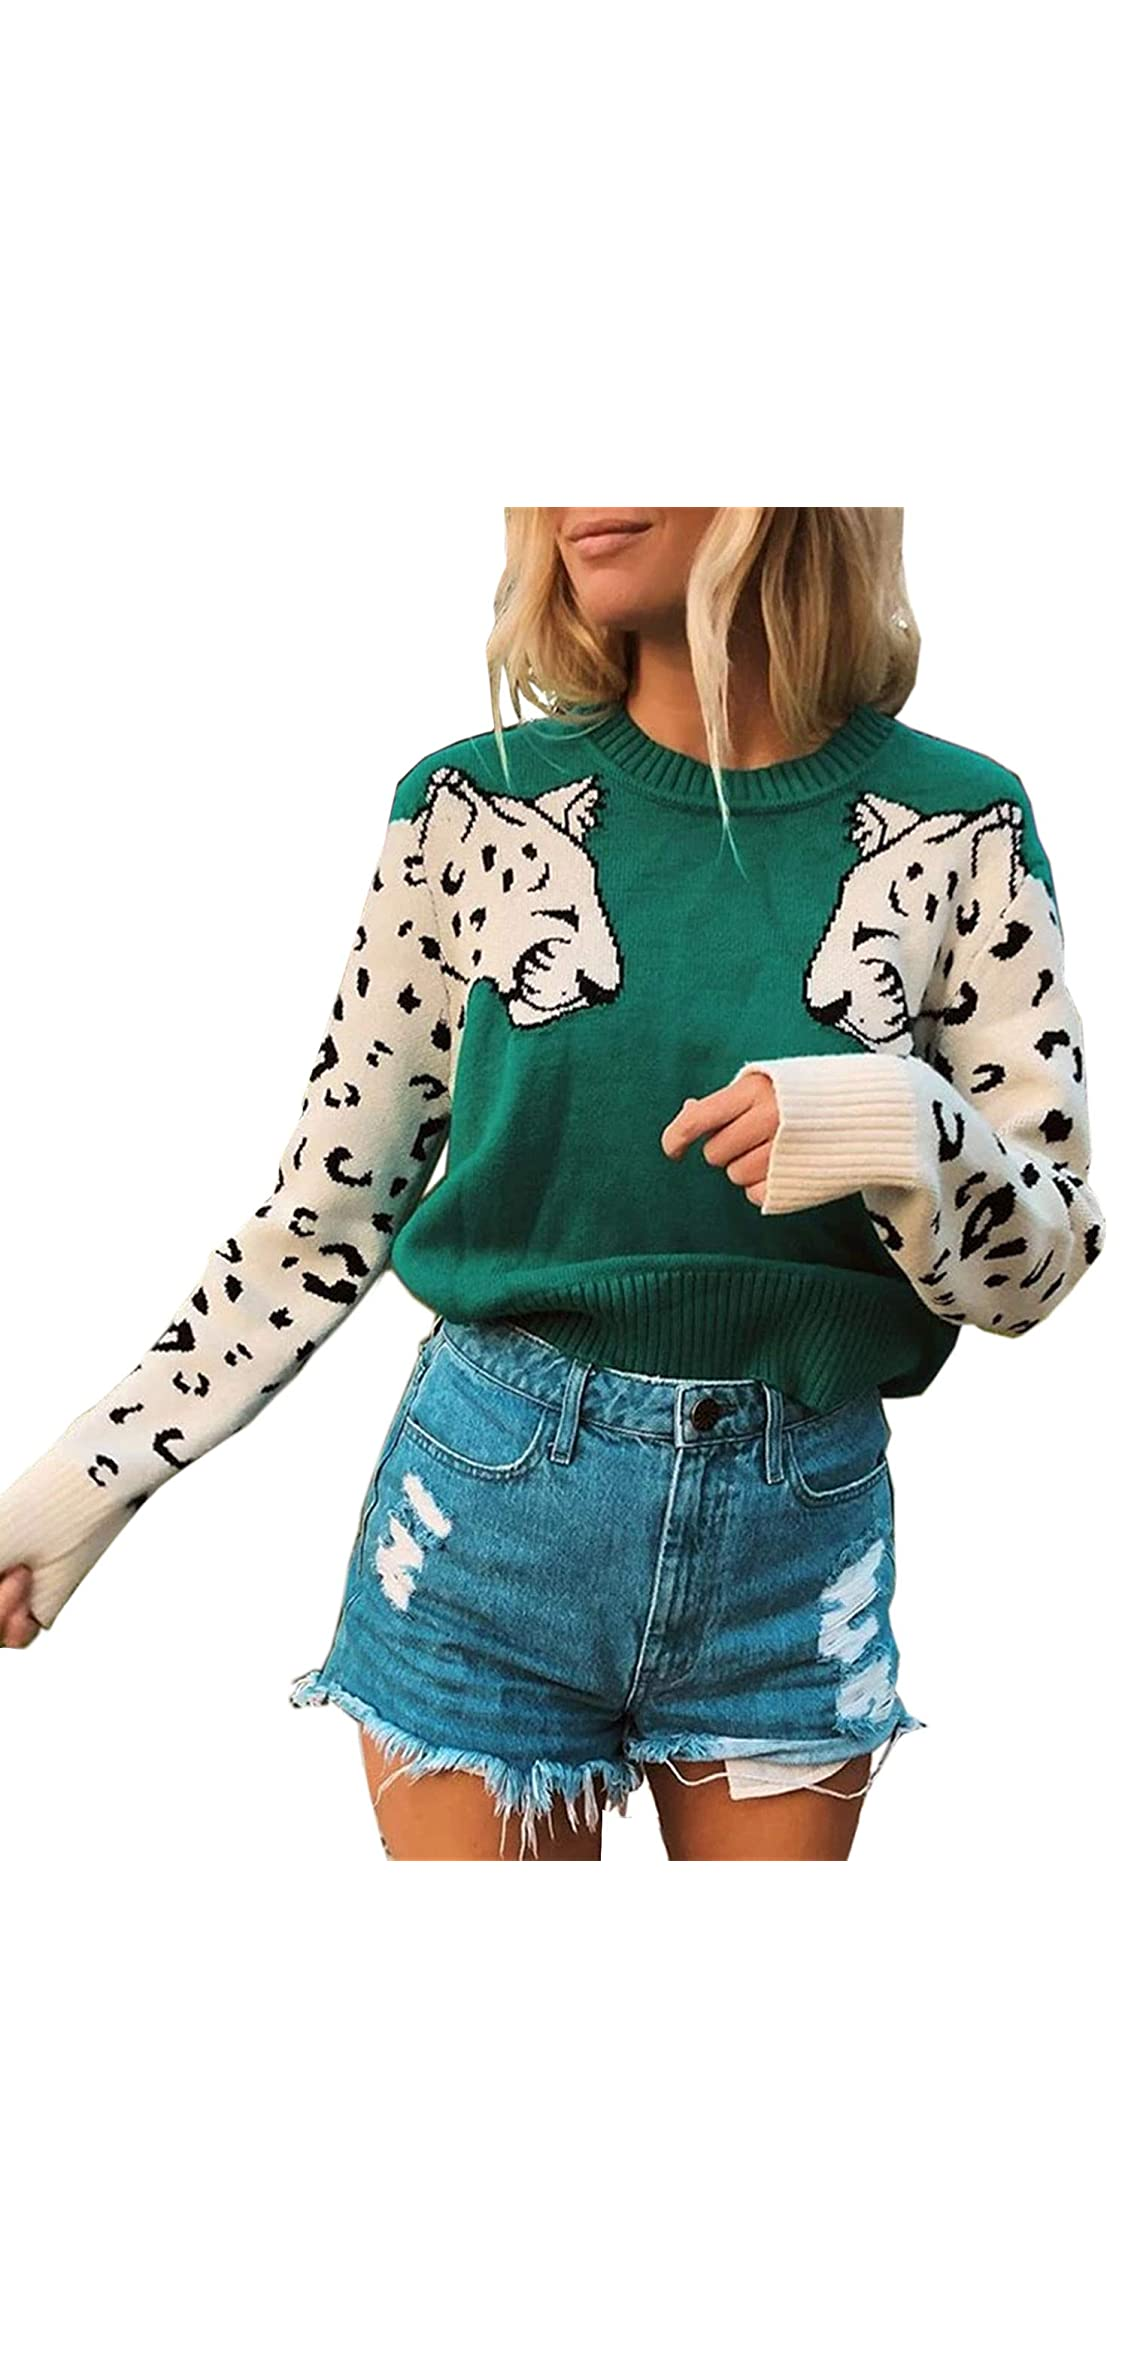 Women's Sweaters Casual Leopard Printed Patchwork Long